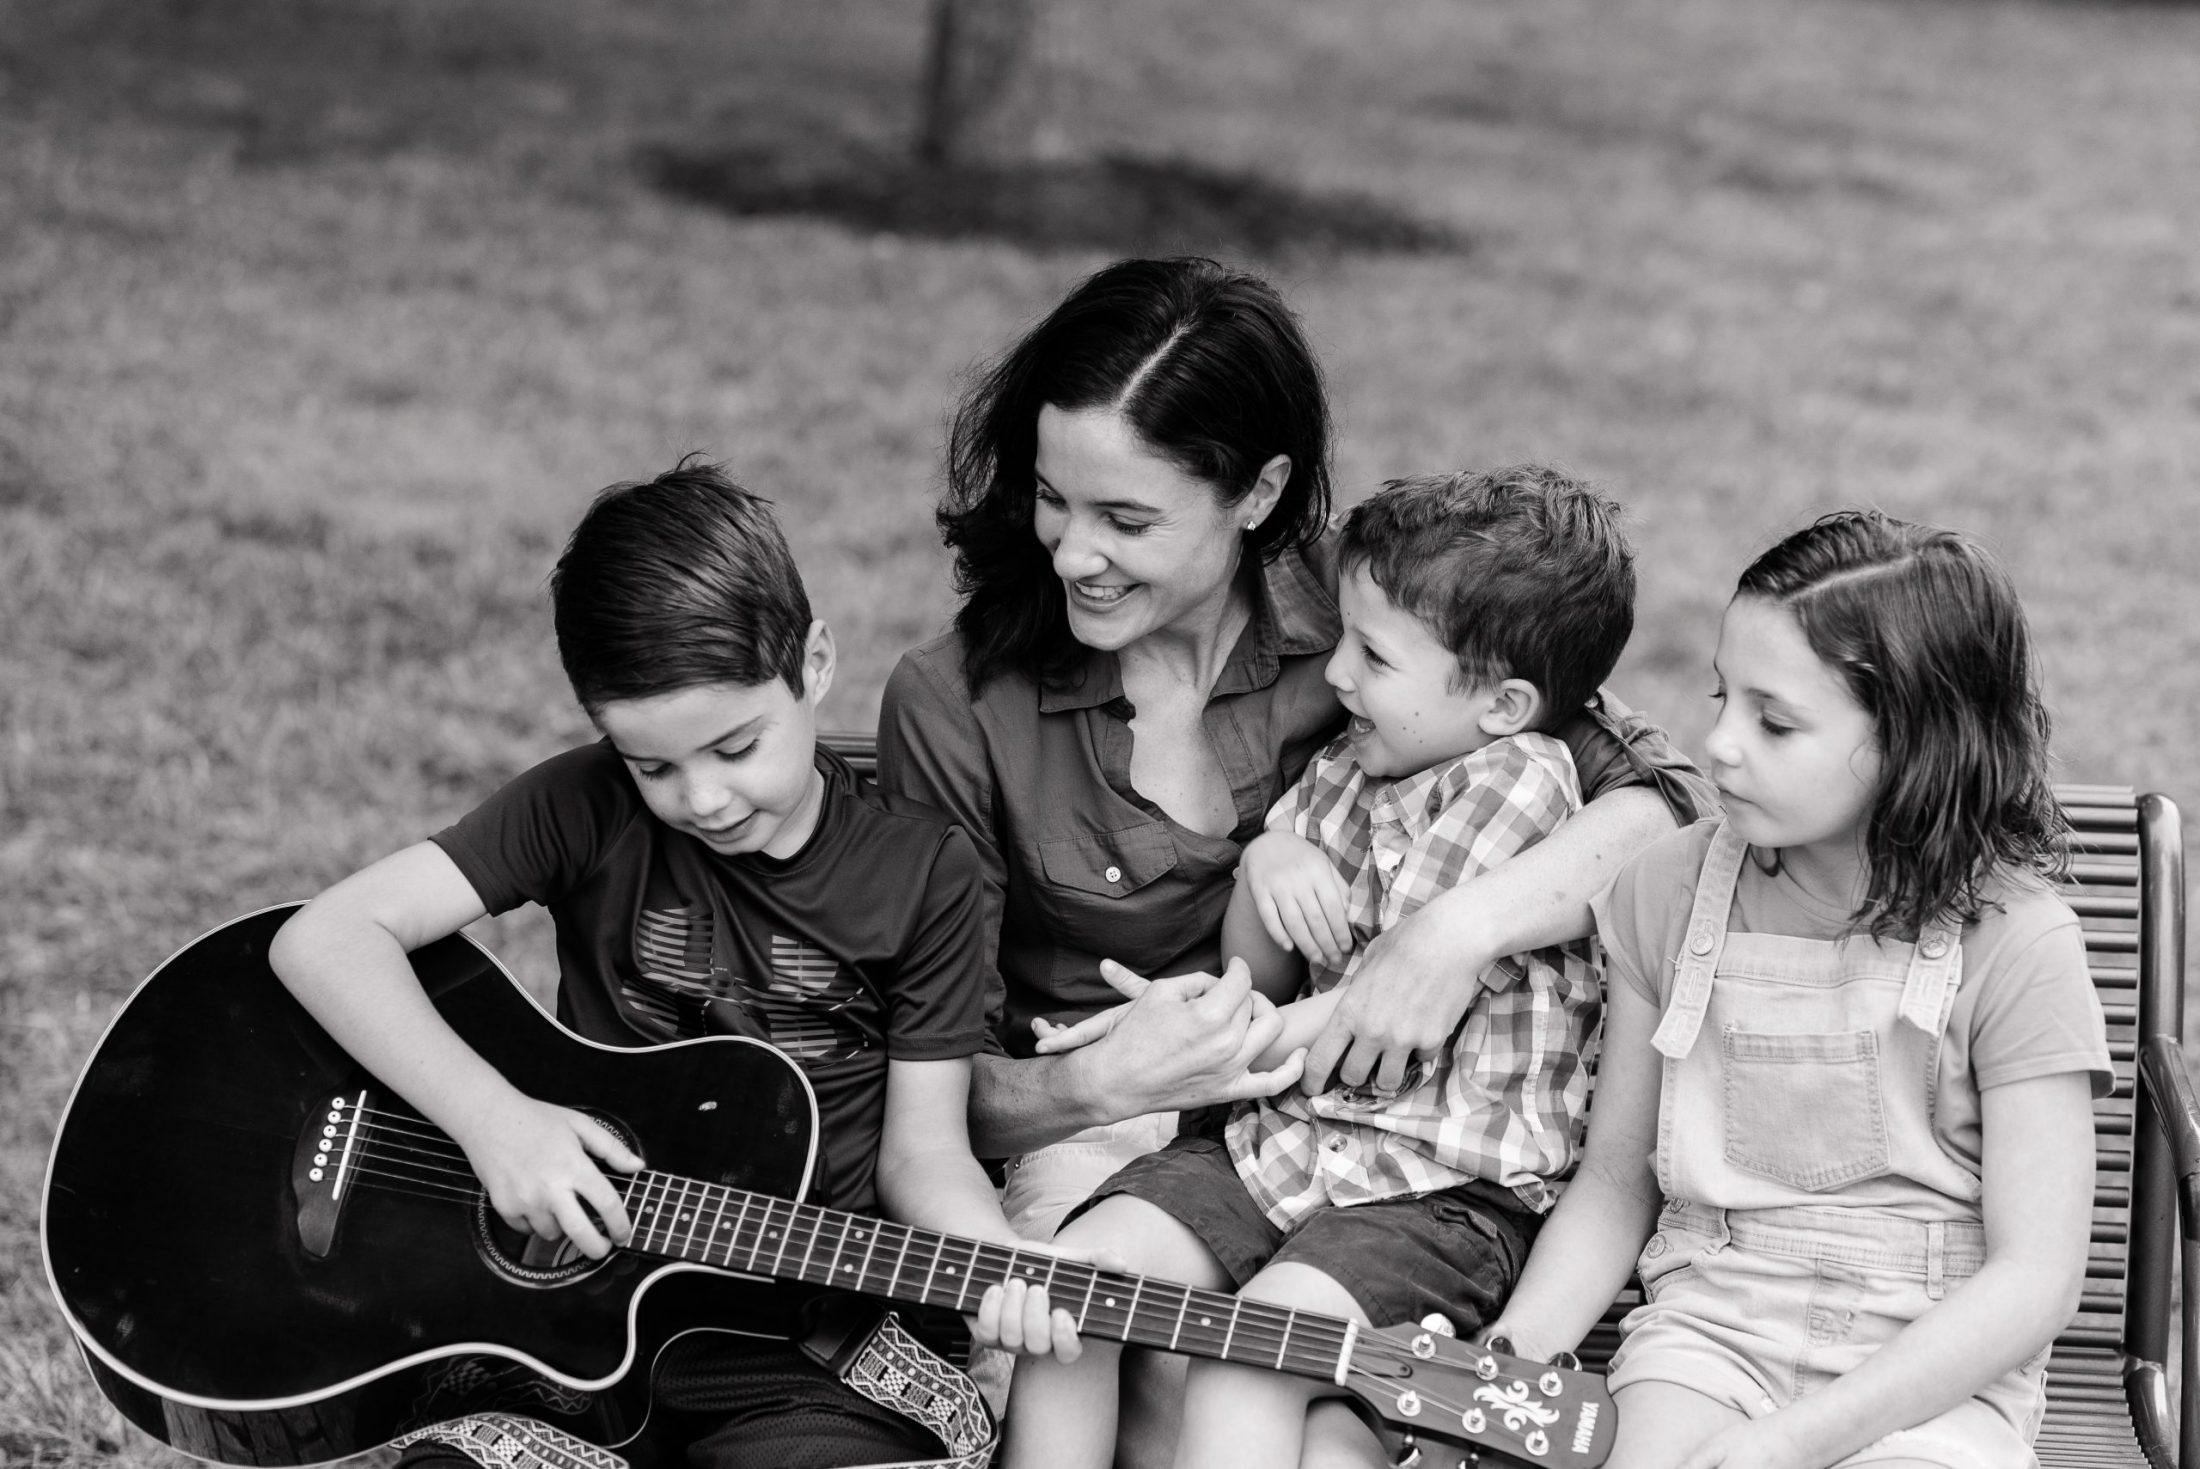 Black and white image of family of DC widow blog writer Marjorie Brimley